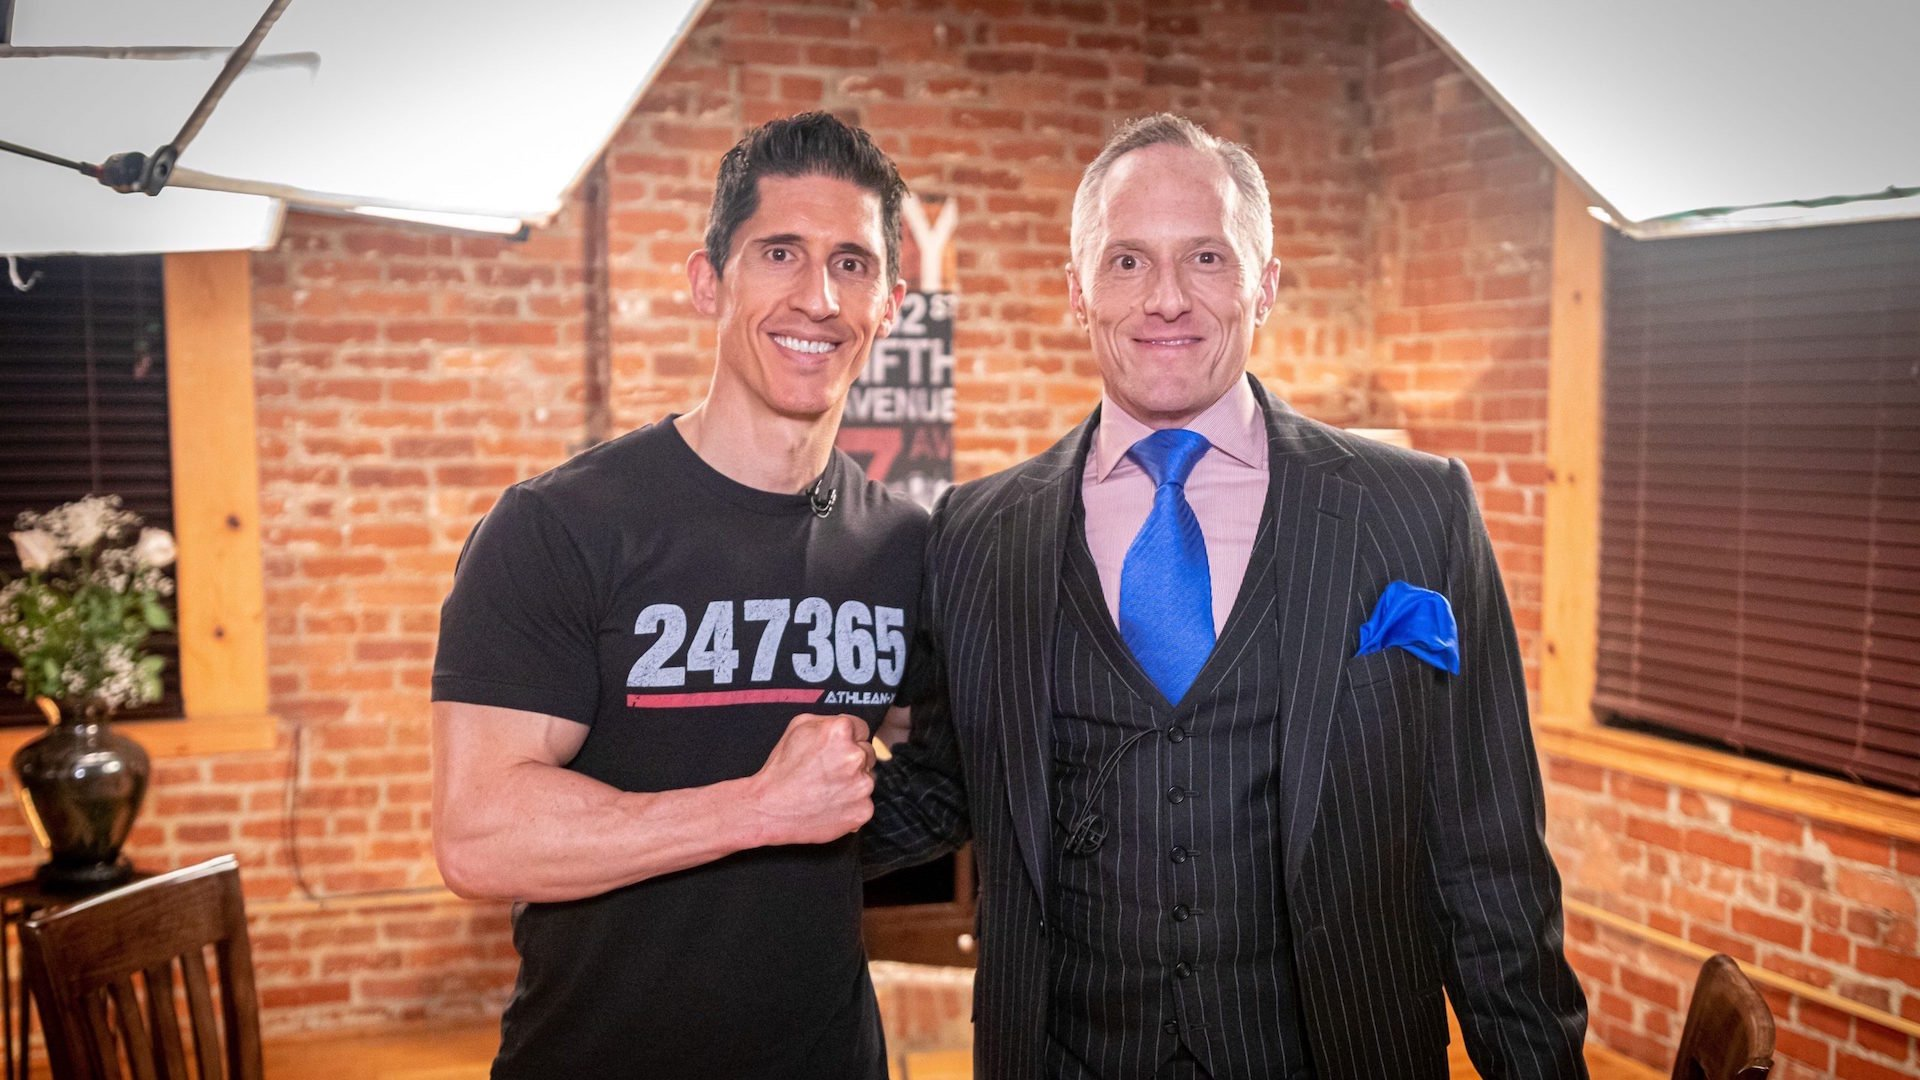 Jeff Cavaliere - ATHLEAN-X: How To Use Science To Train Your Body Harder, Faster & Smarter